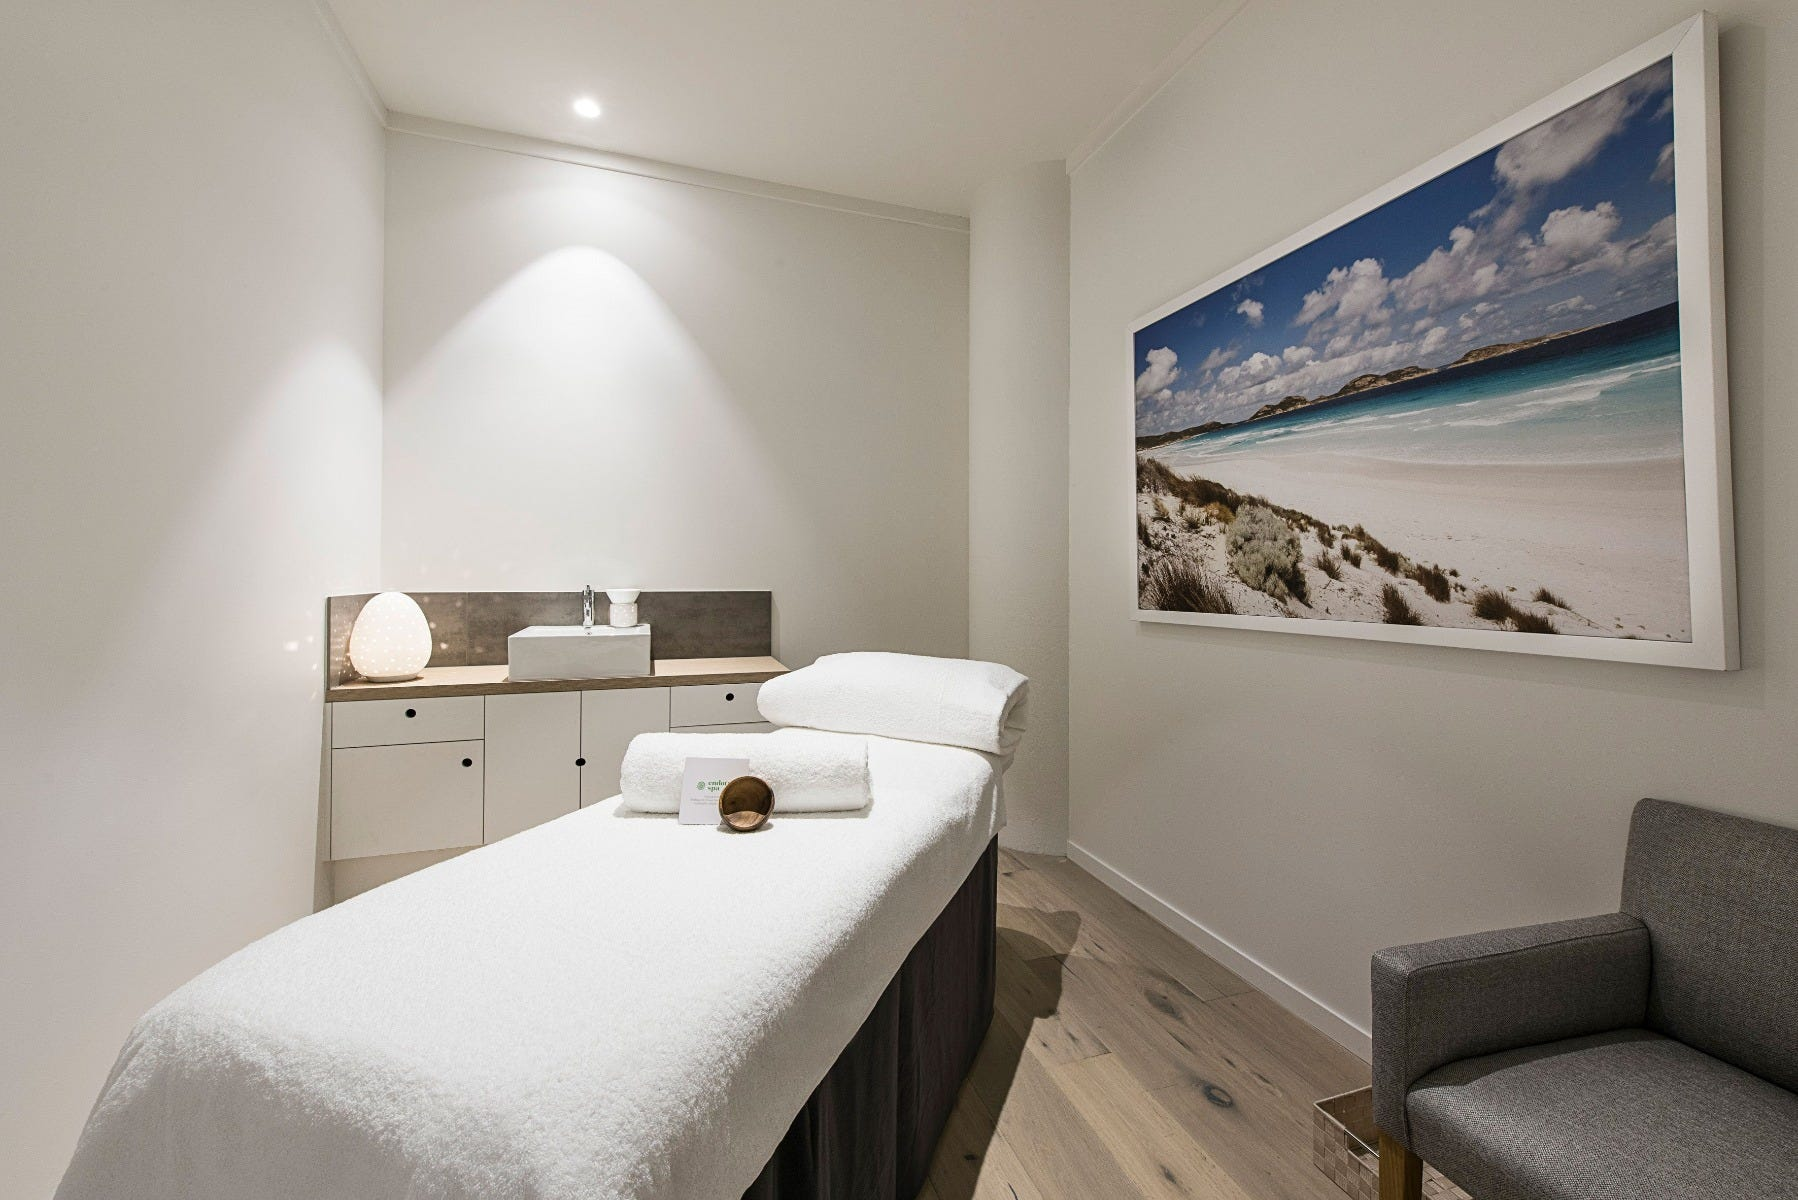 Chatswood Day Spa Treatment Room